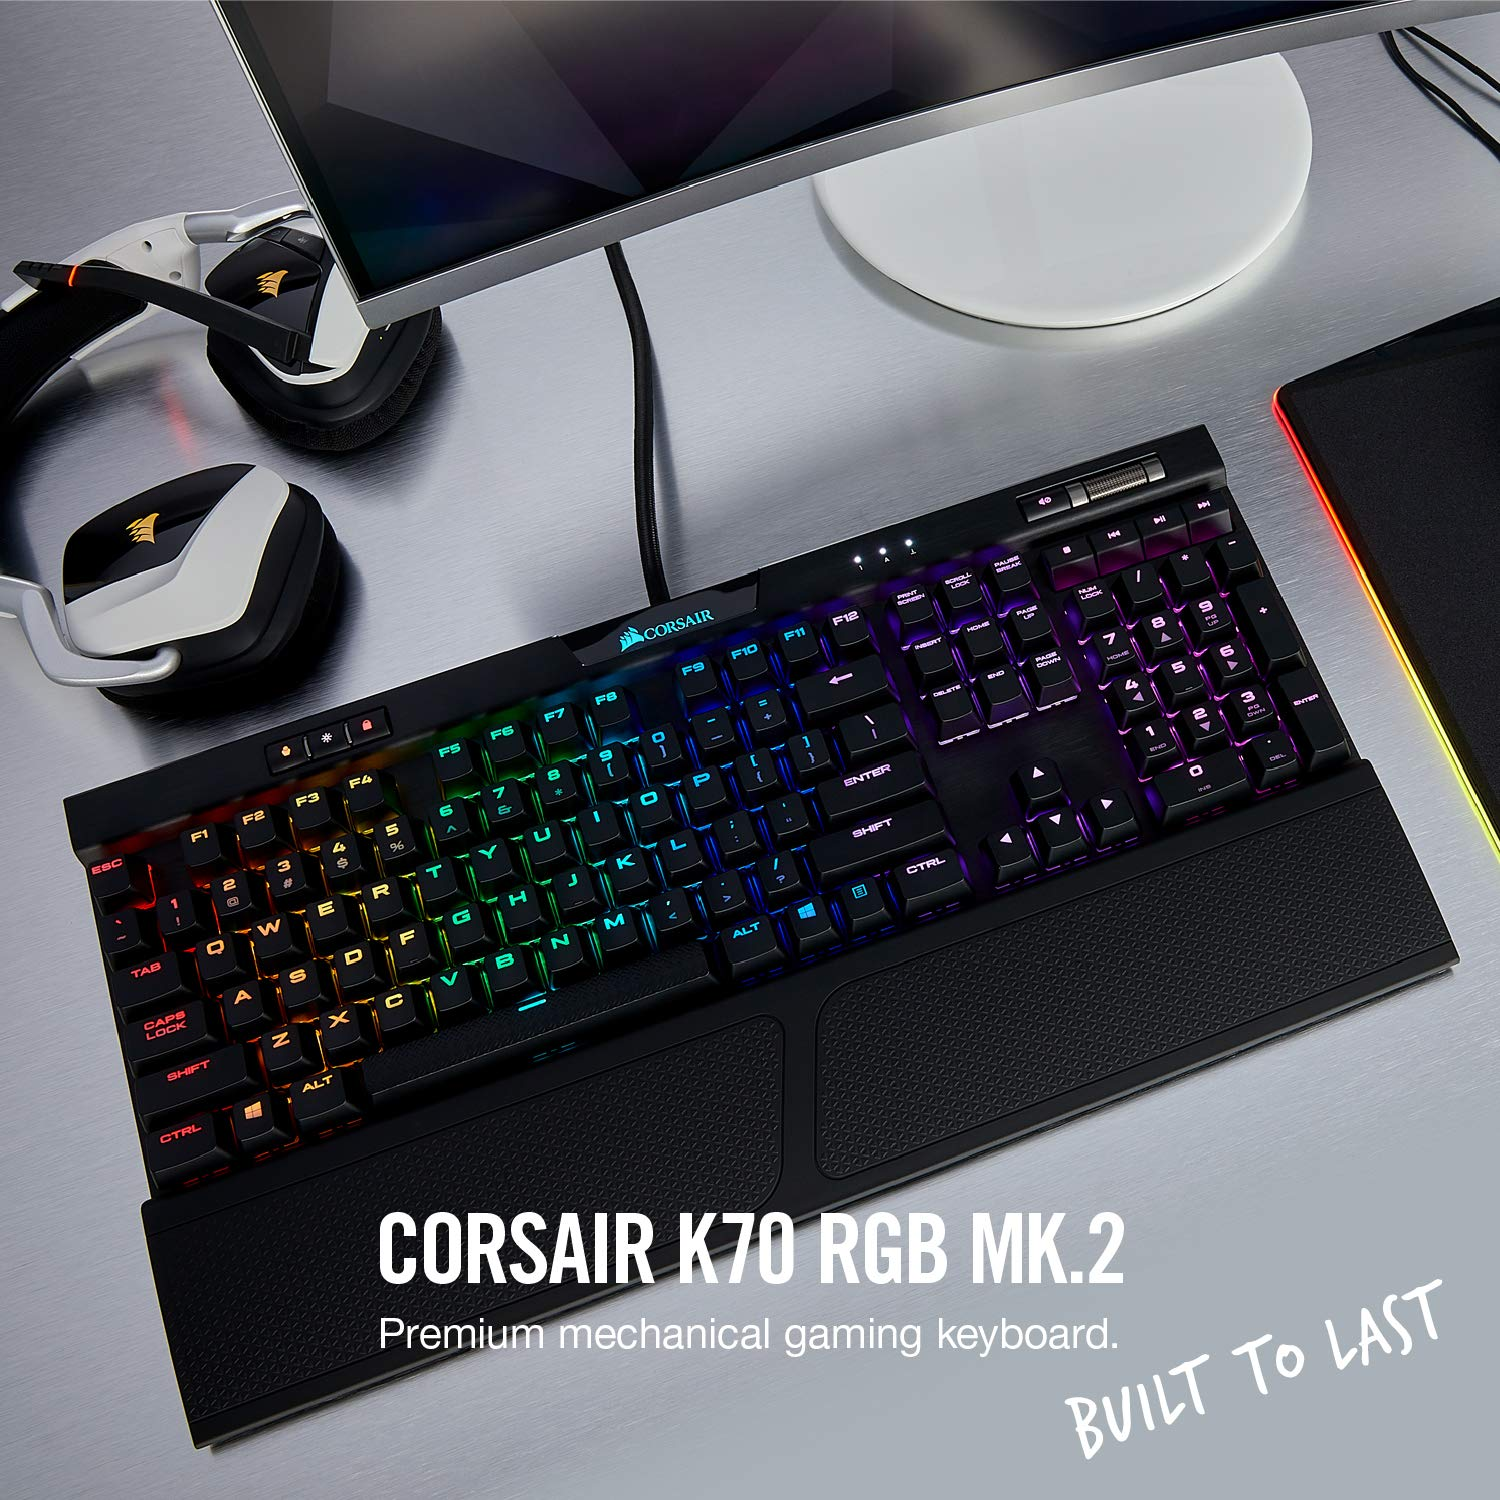 CORSAIR K70 RGB MK 2 Mechanical Gaming Keyboard - USB Passthrough & Media  Controls - Linear & Quiet - Cherry MX Red - RGB LED Backlit